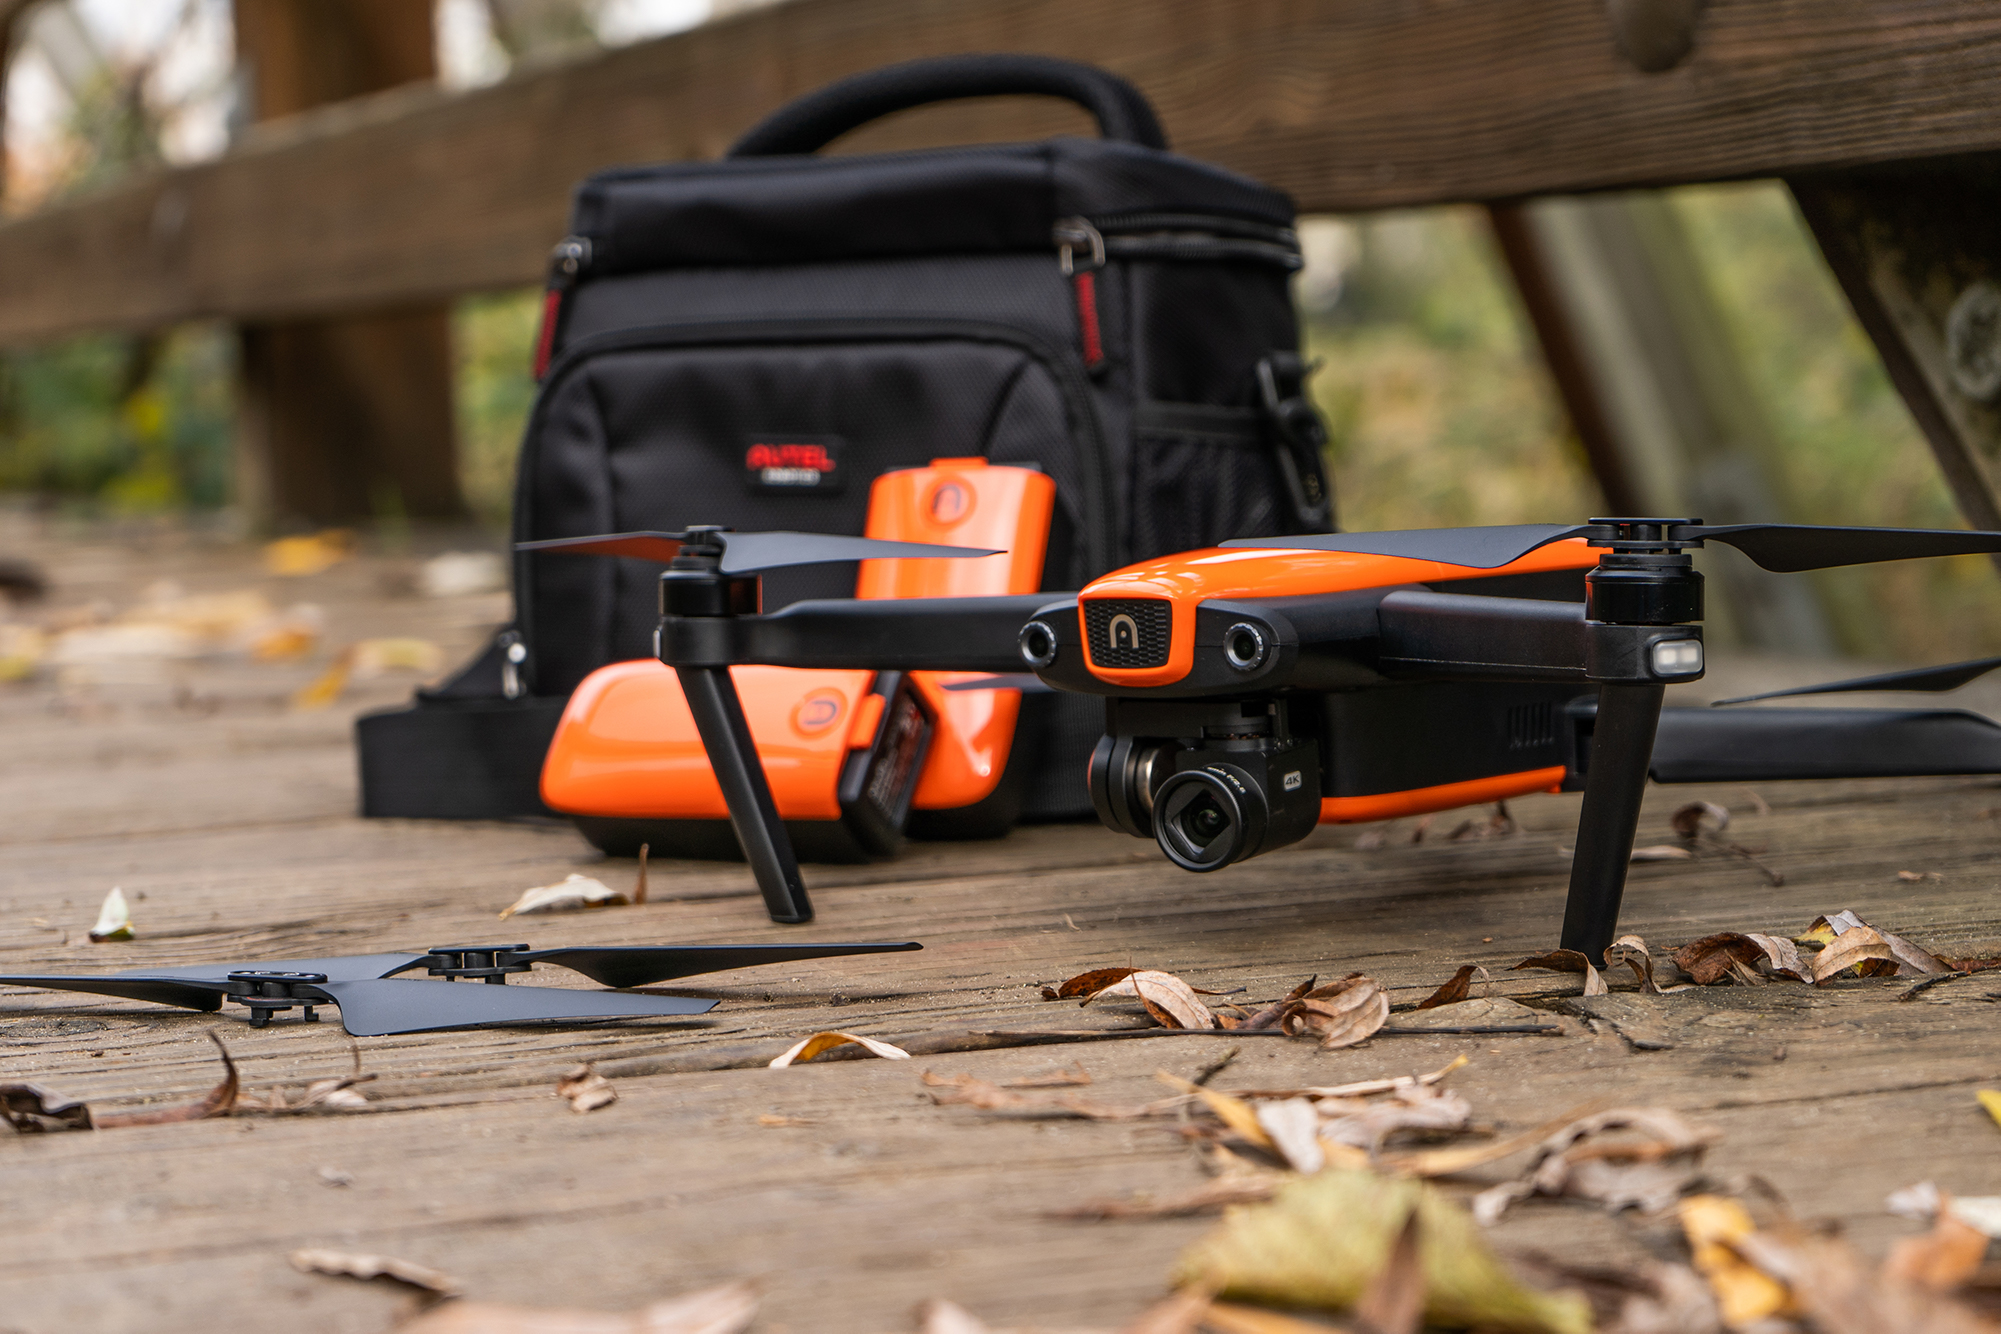 Win a Autel Robotics EVO Drone and On The Go Bundle Giveaway Image